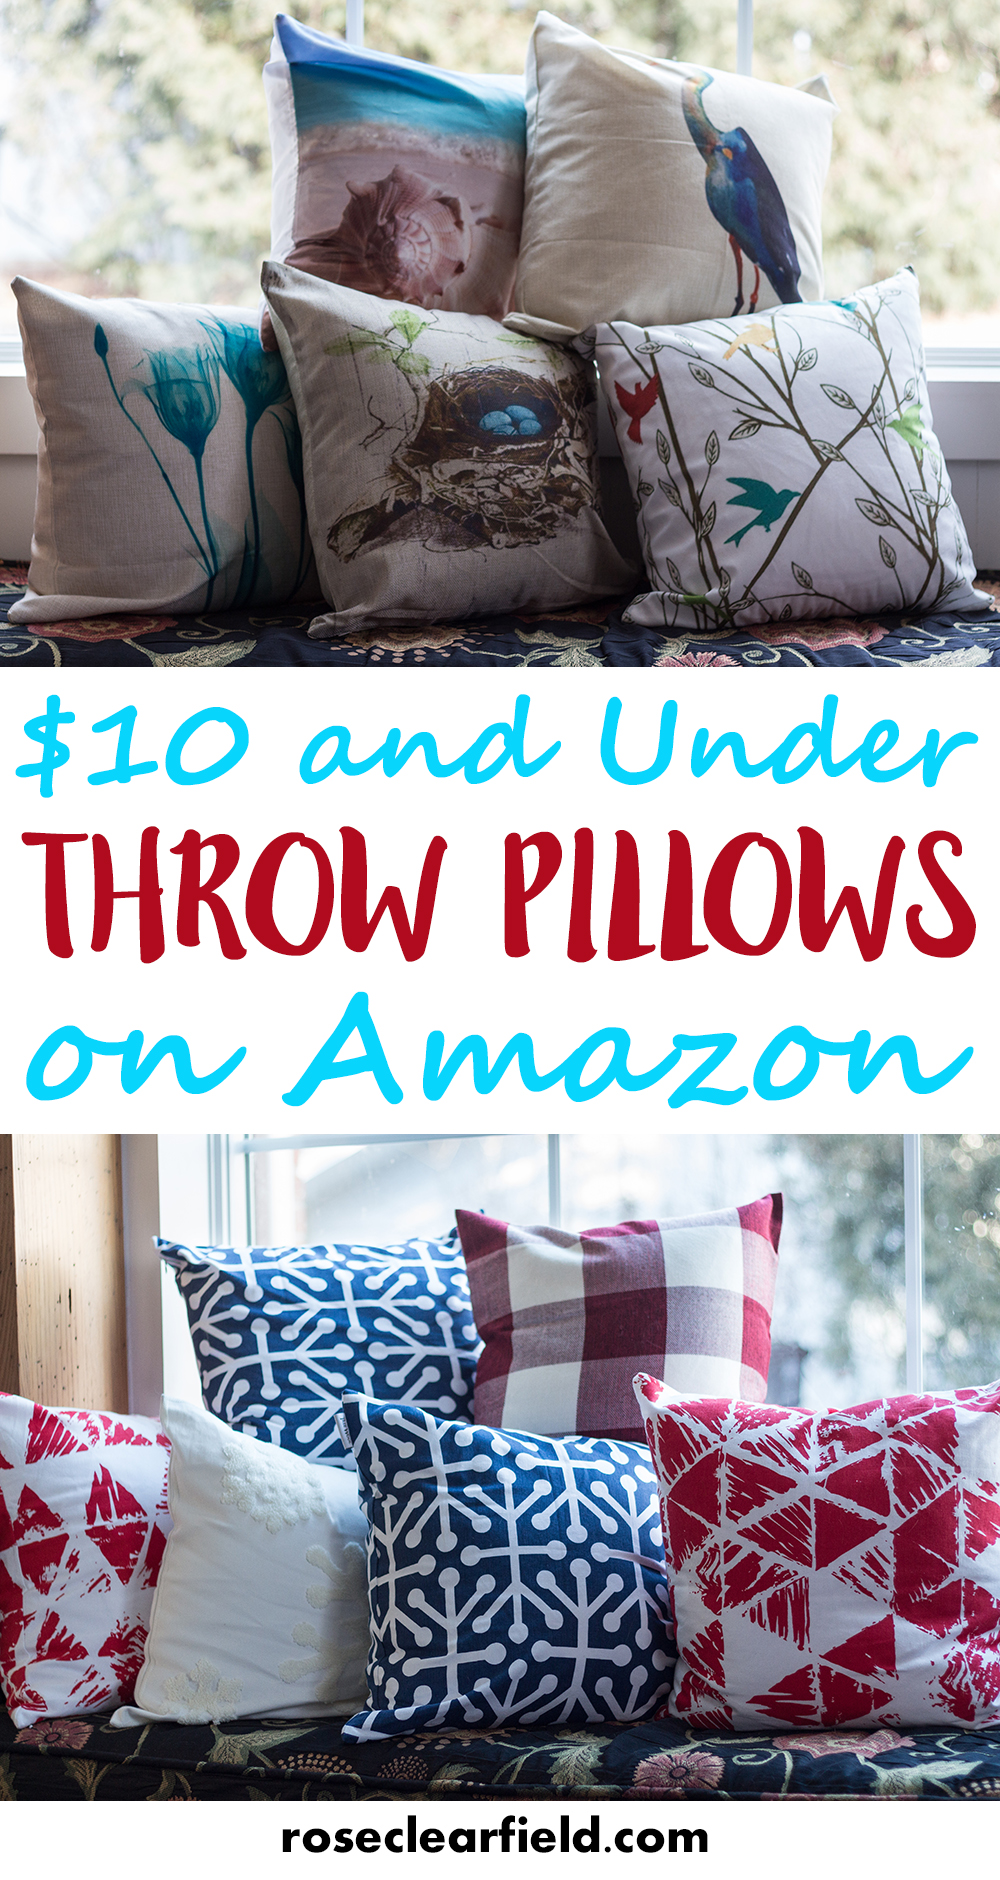 $10 And Under Throw Pillows On Amazon. Decorate Your Home Beautifully  Without Breaking The Bank